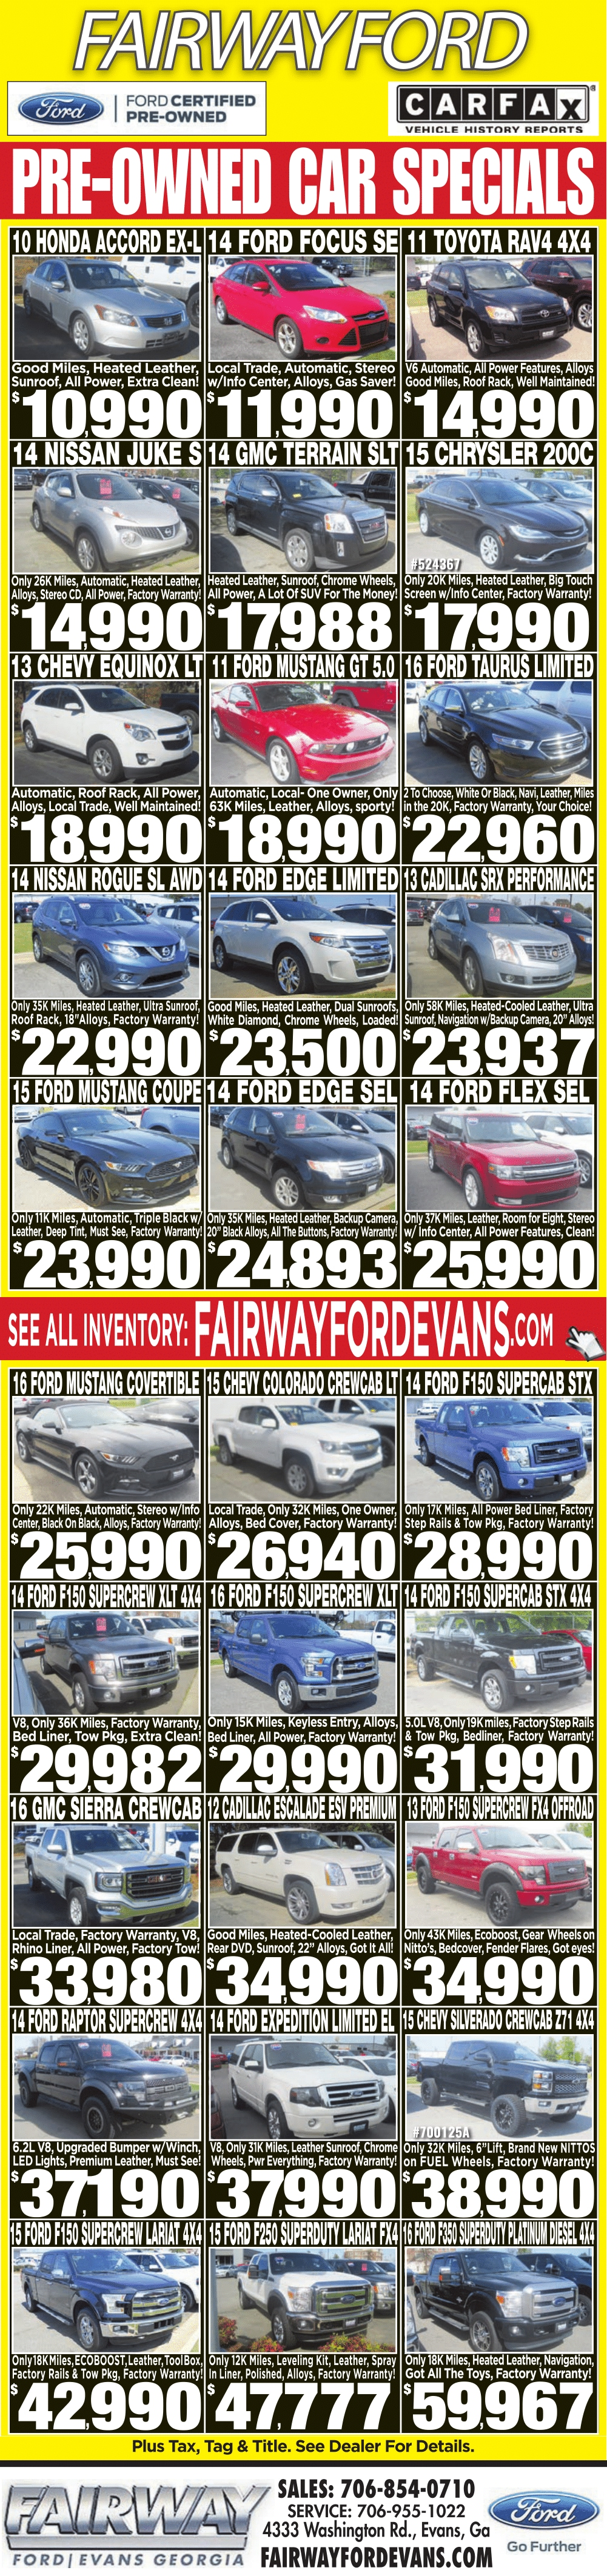 Fairway ford Used Cars Price Cars Release date